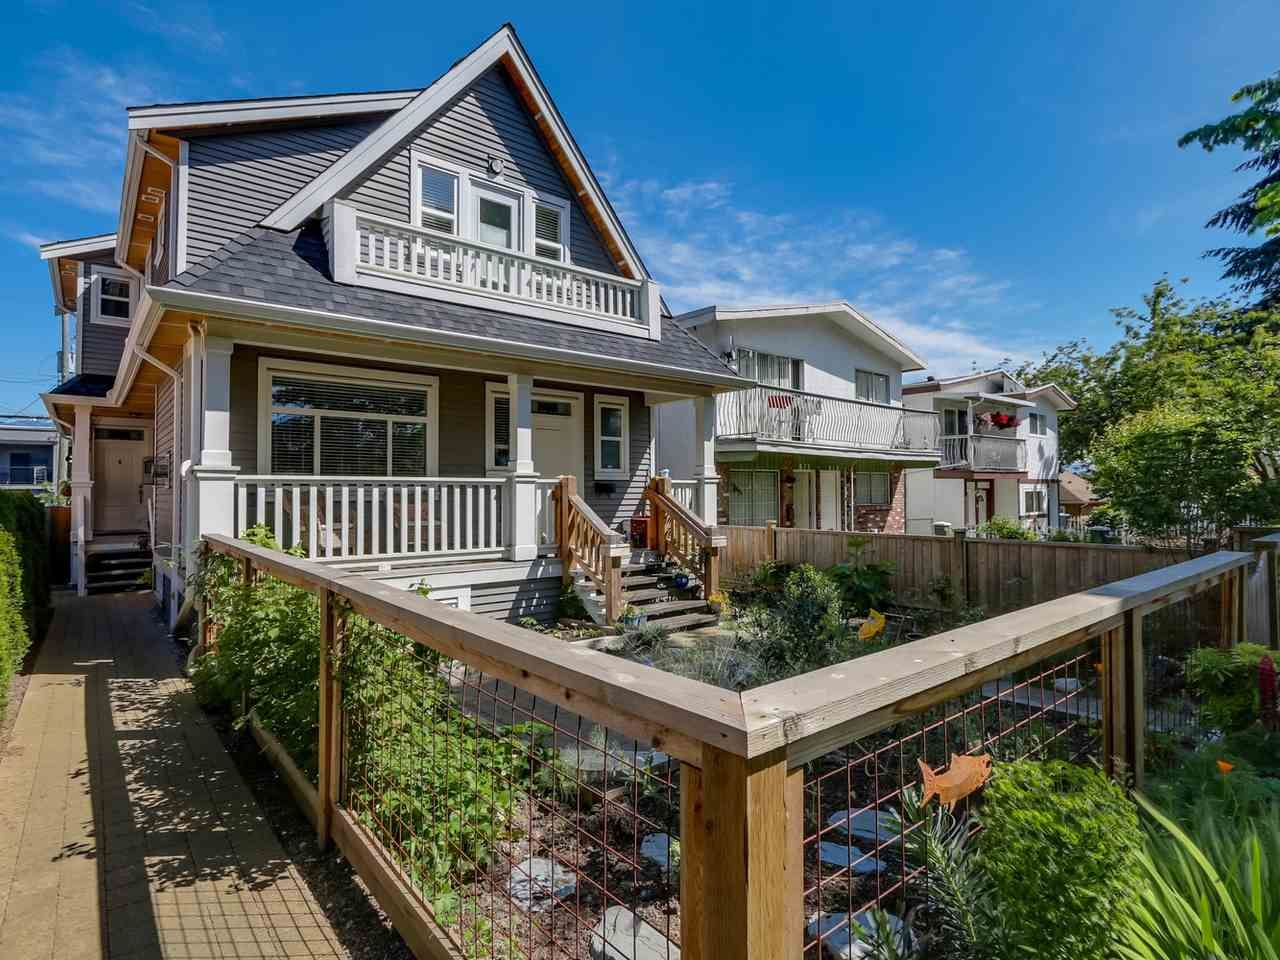 Main Photo: 865 E 10TH Avenue in Vancouver: Mount Pleasant VE 1/2 Duplex for sale (Vancouver East)  : MLS®# R2068935